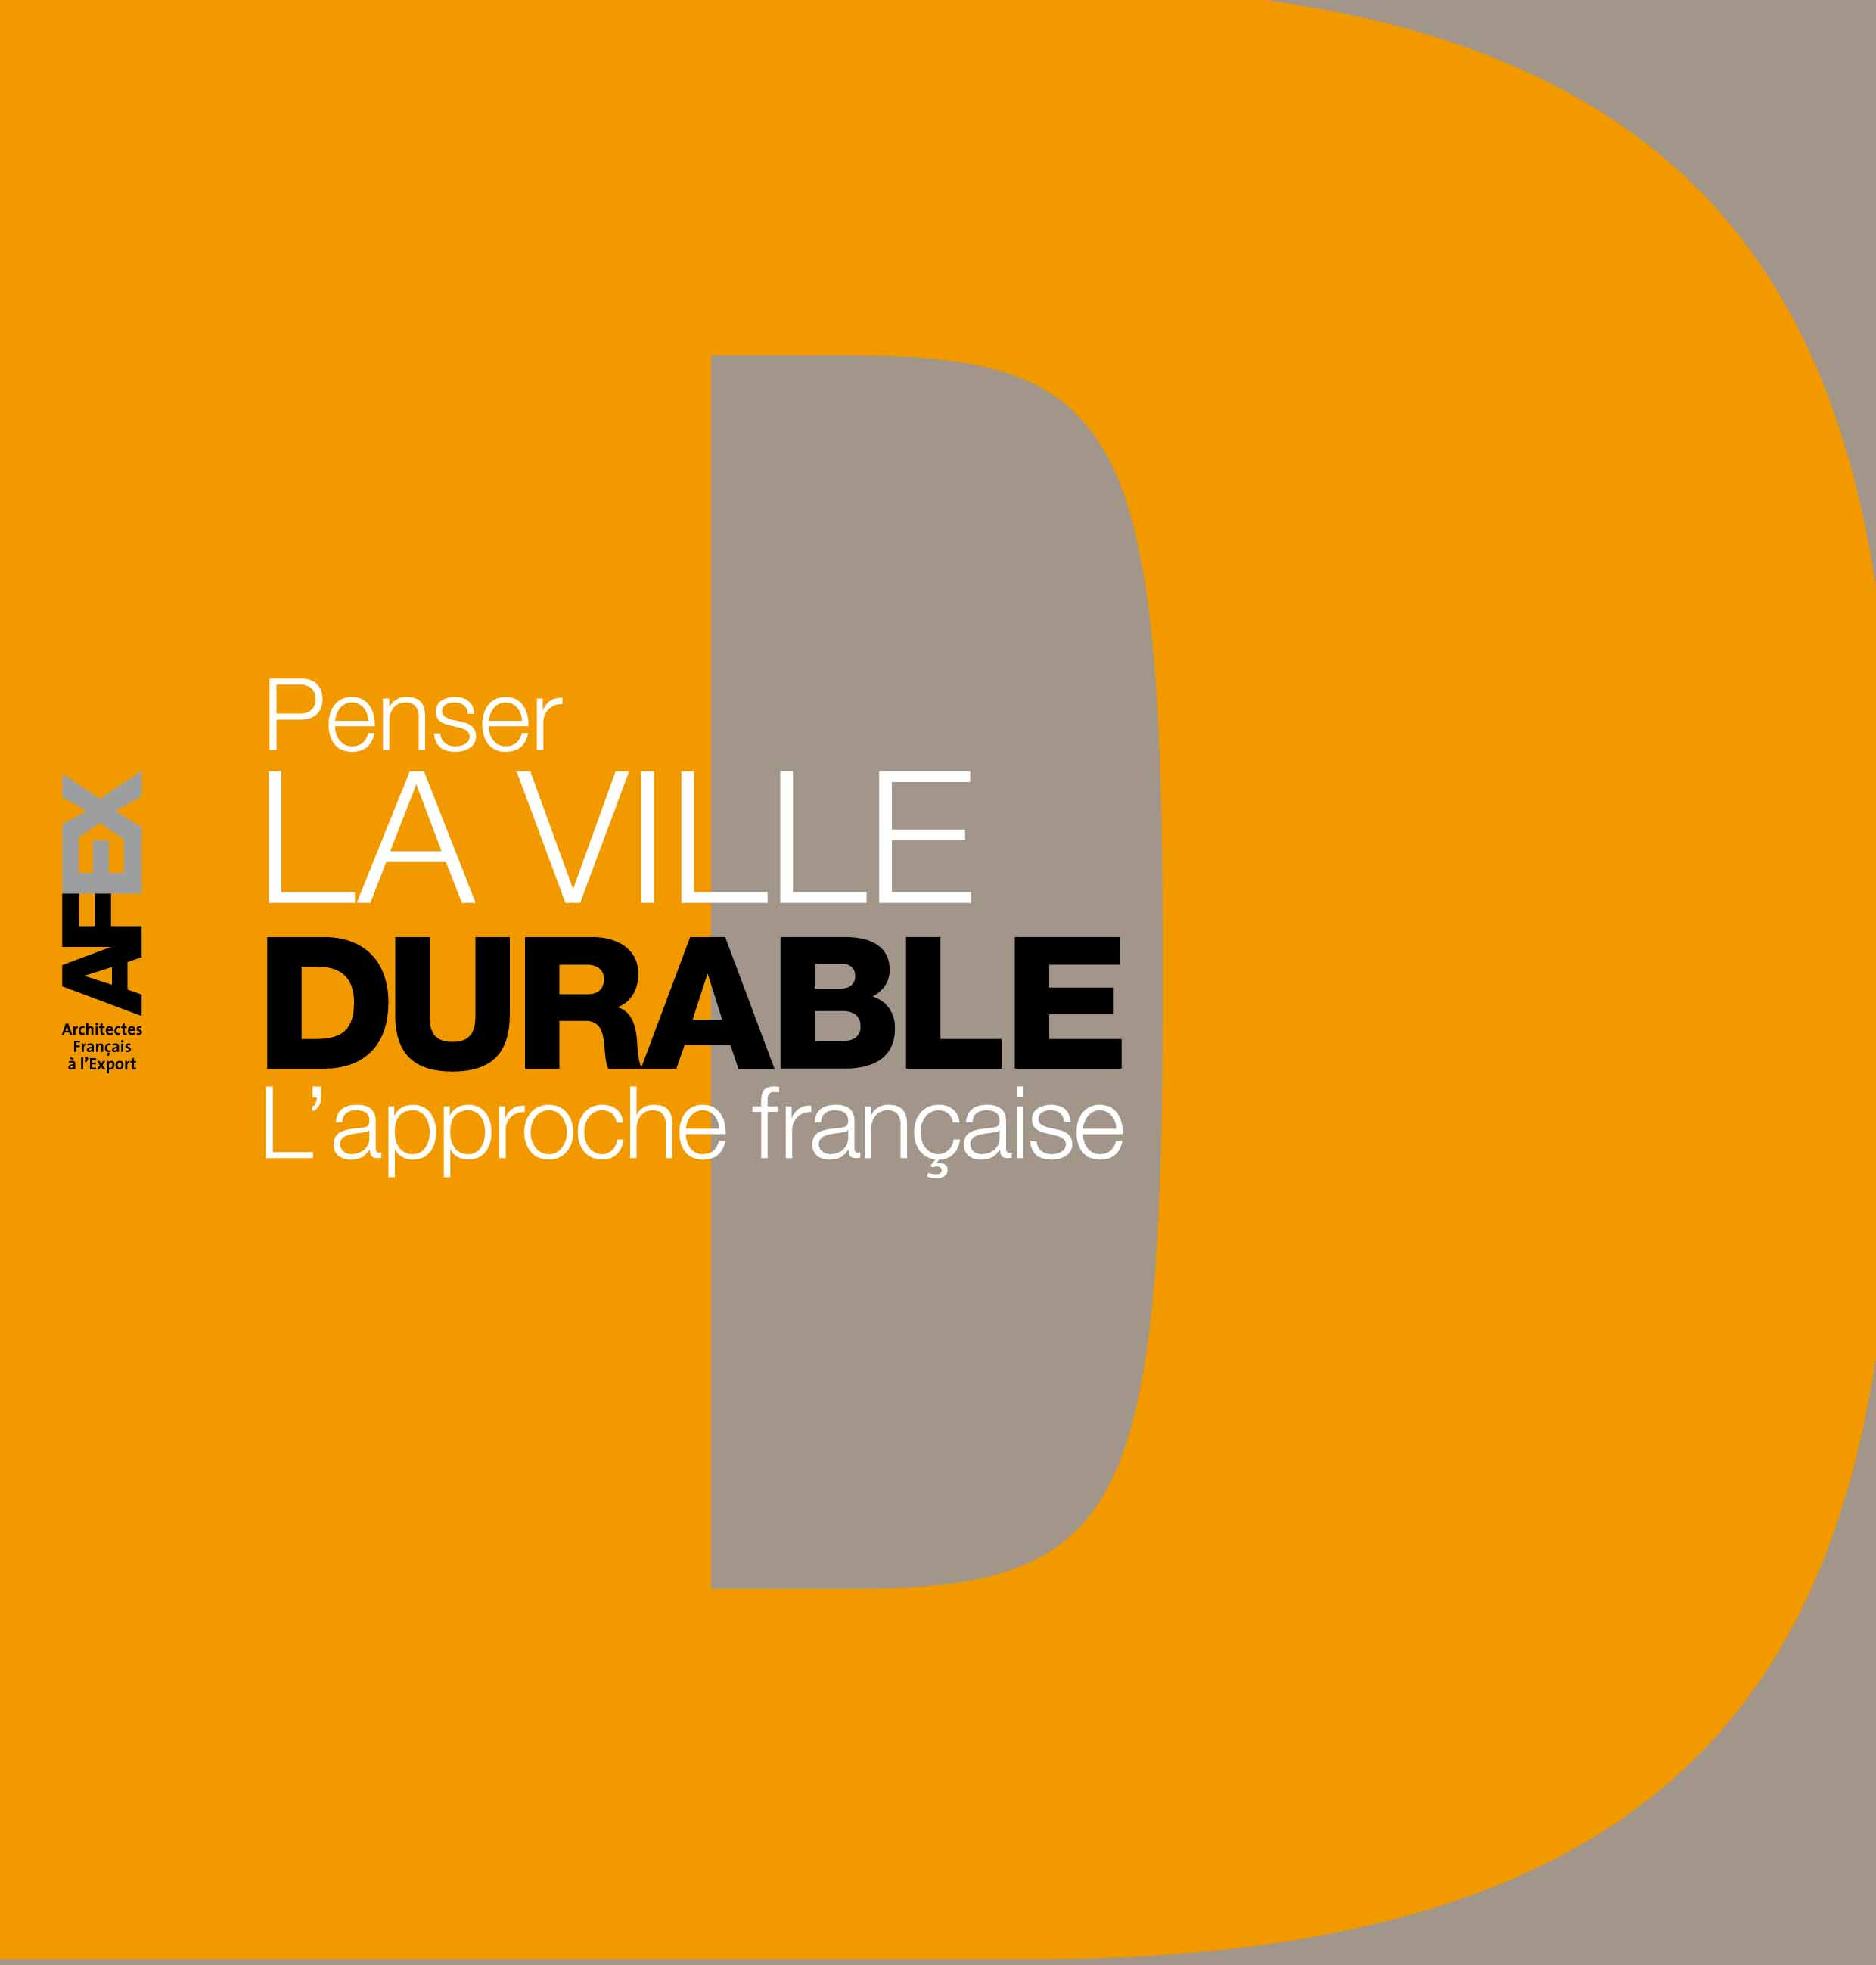 Couverture_Ville_durable.jpg